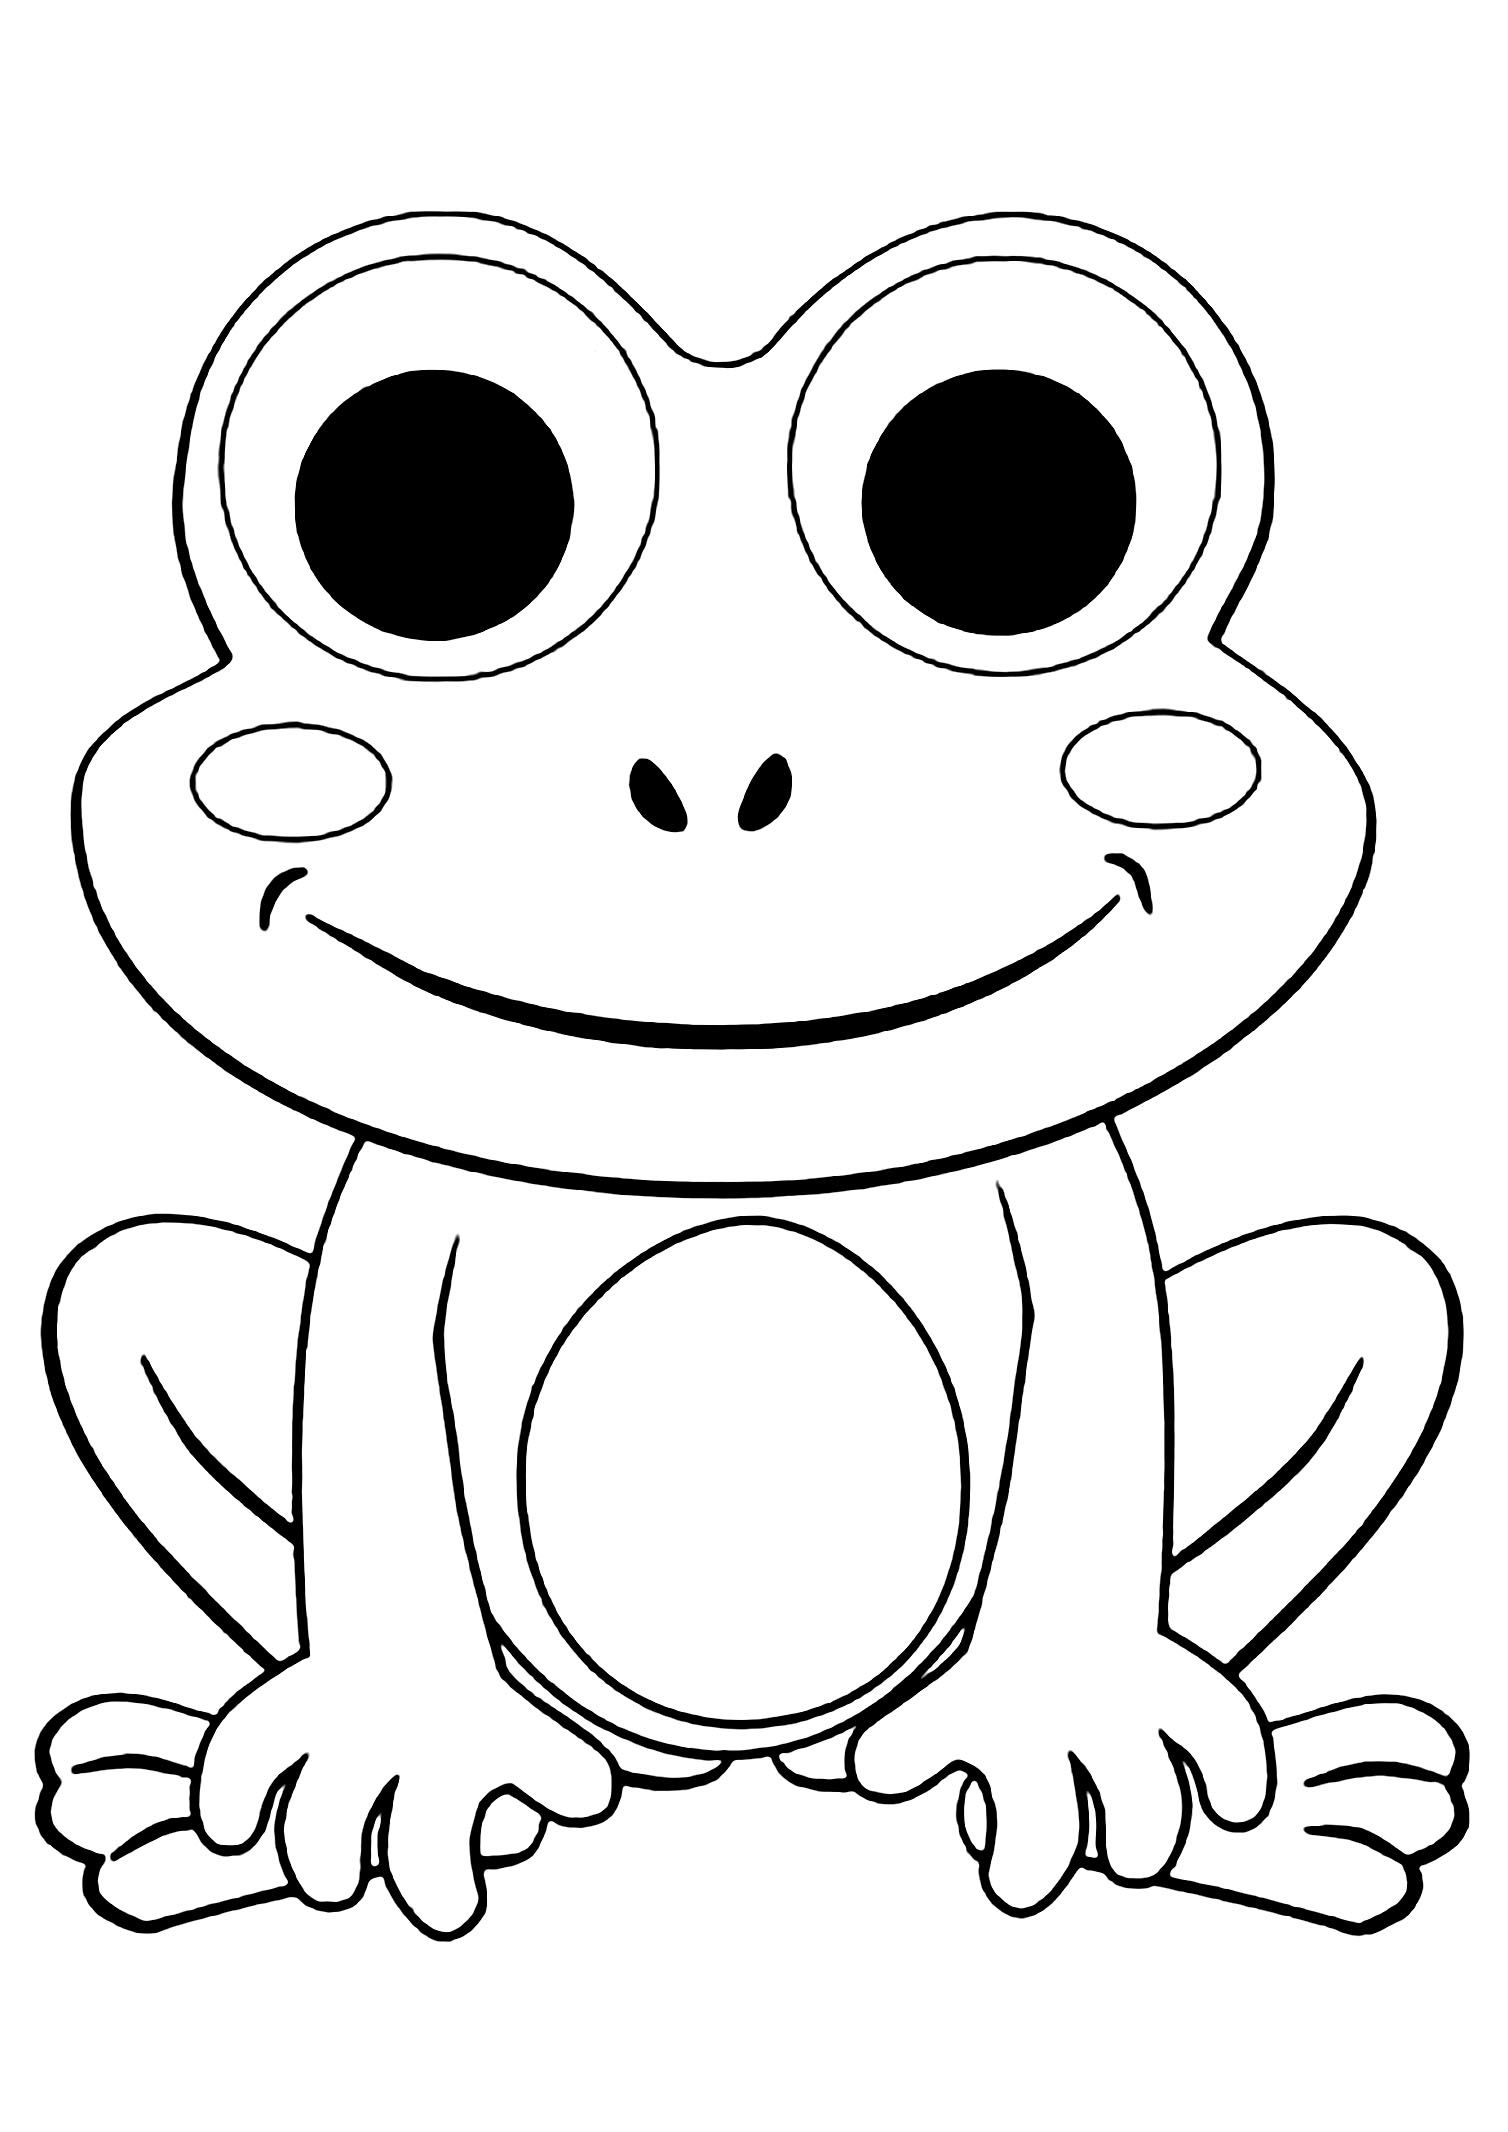 Frogs To Print For Free